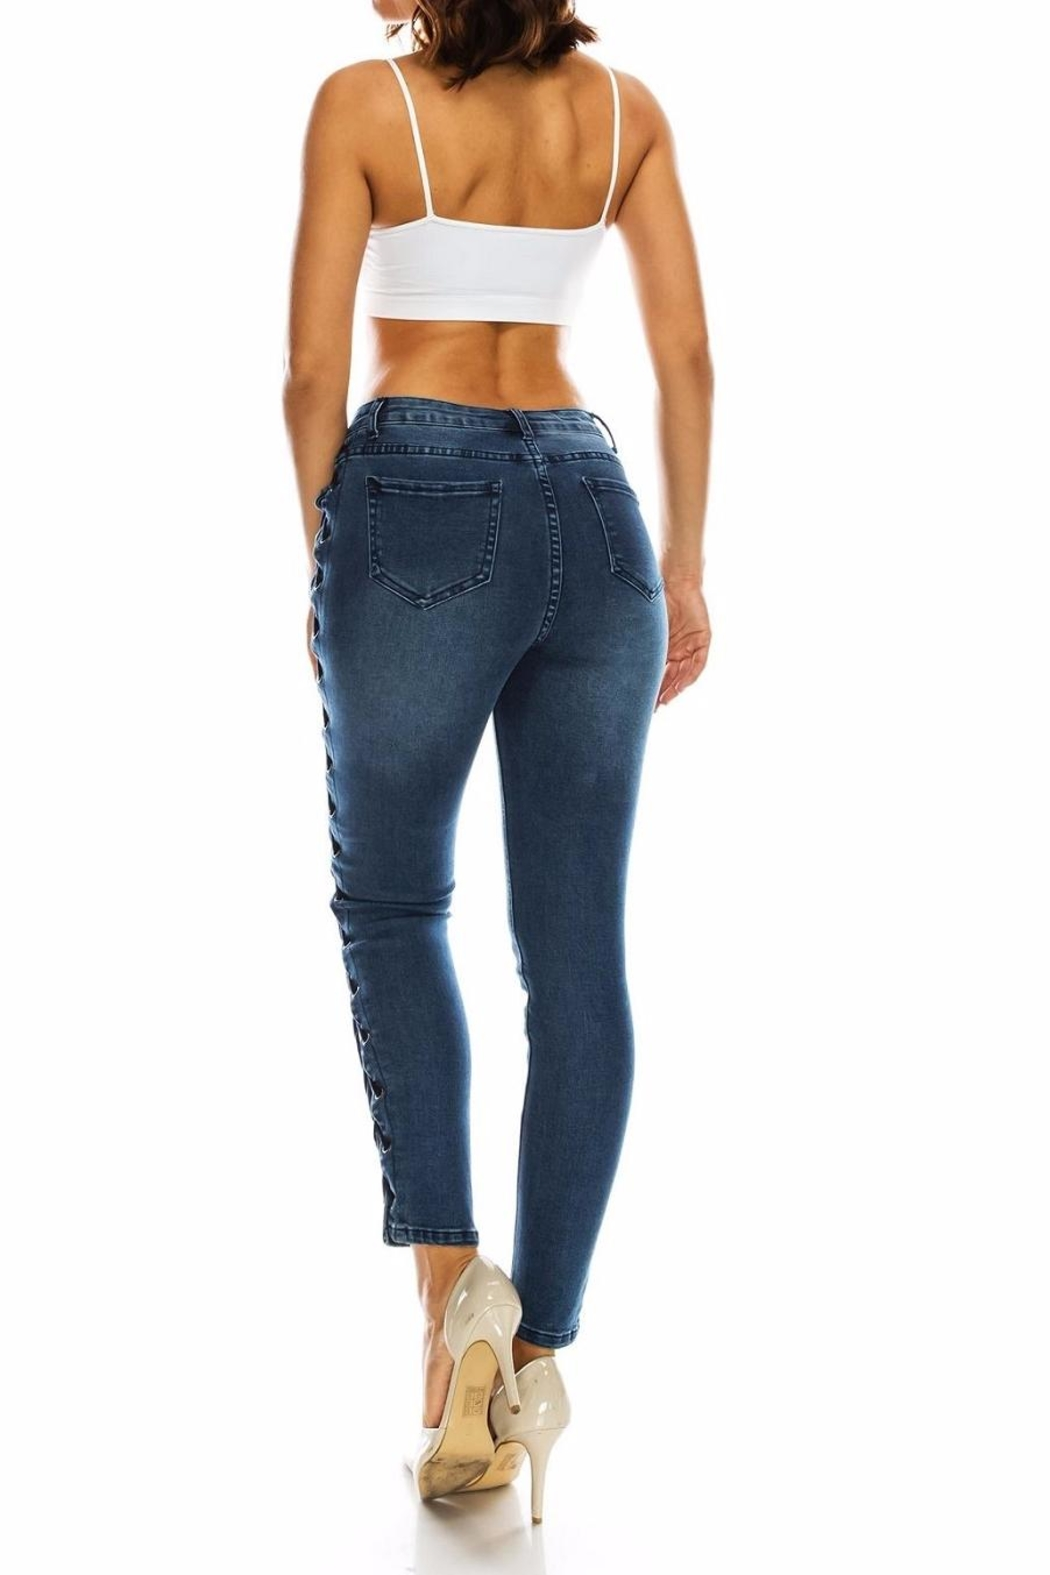 American Bazi Laceup Plussize Jeans - Front Full Image